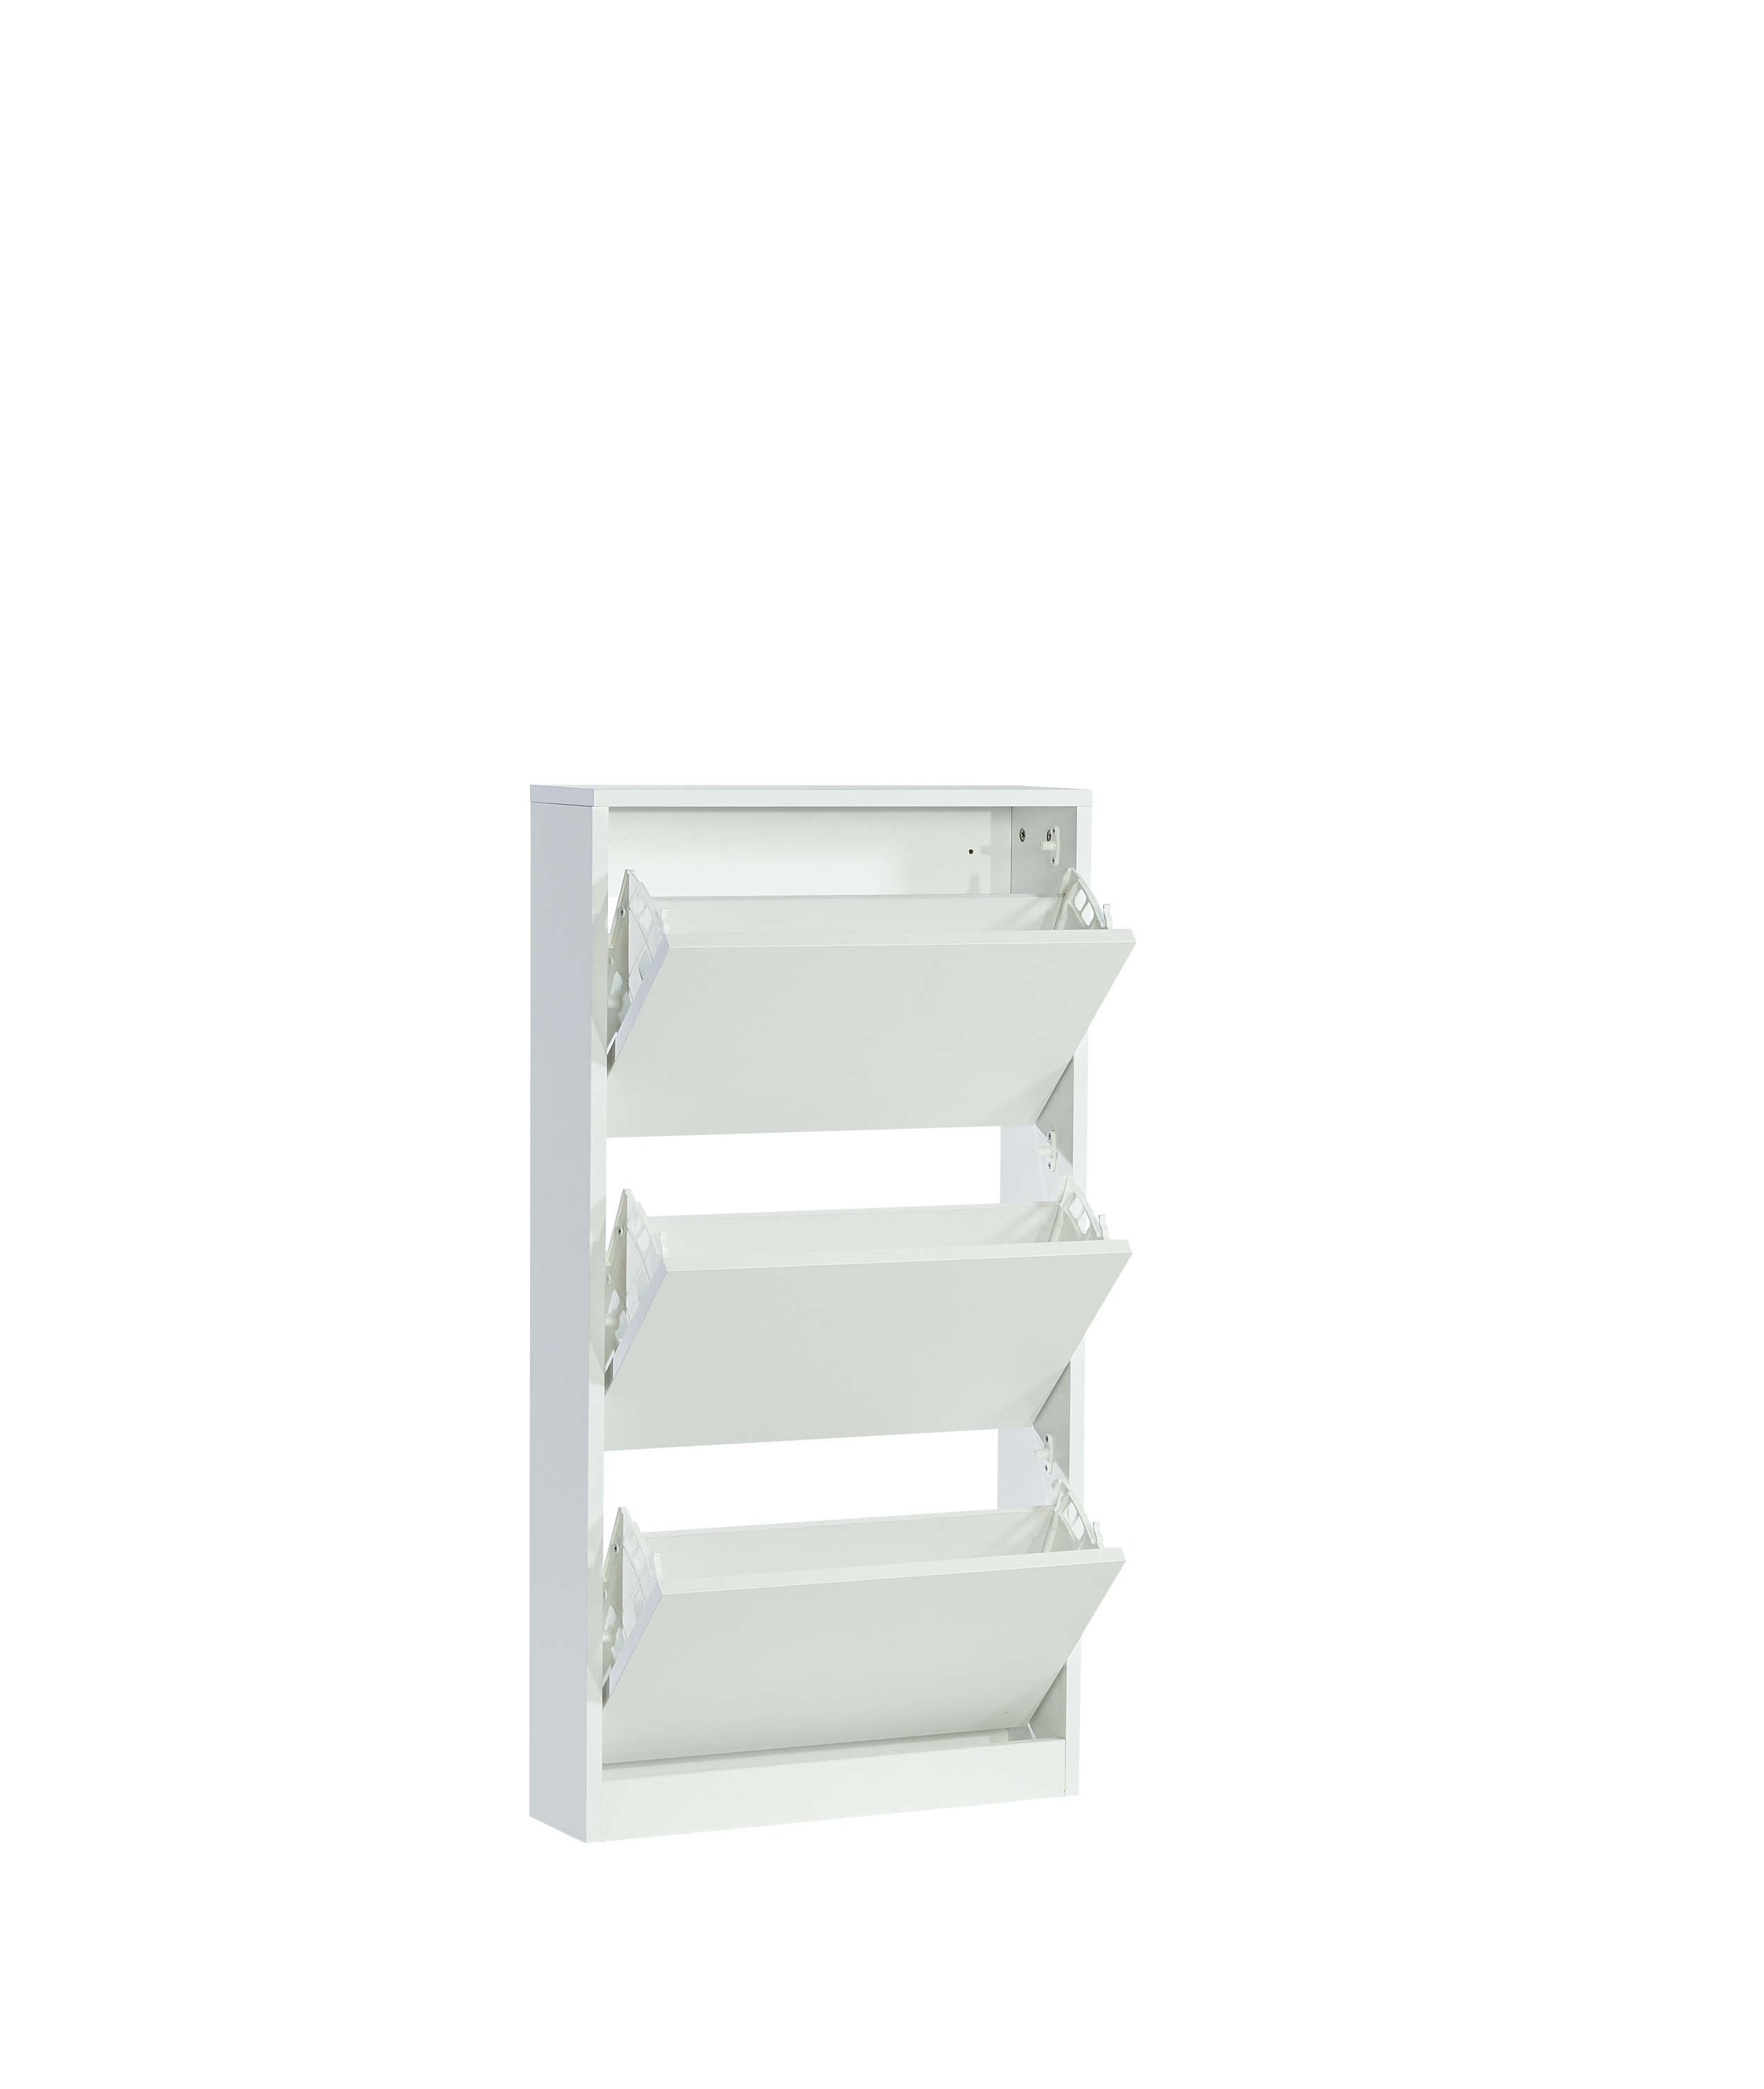 modern compact 3 compartment shoe rack storage cabinet buy wooden shoe cabinet walmart shoe cabinet white shoe rack product on alibaba com